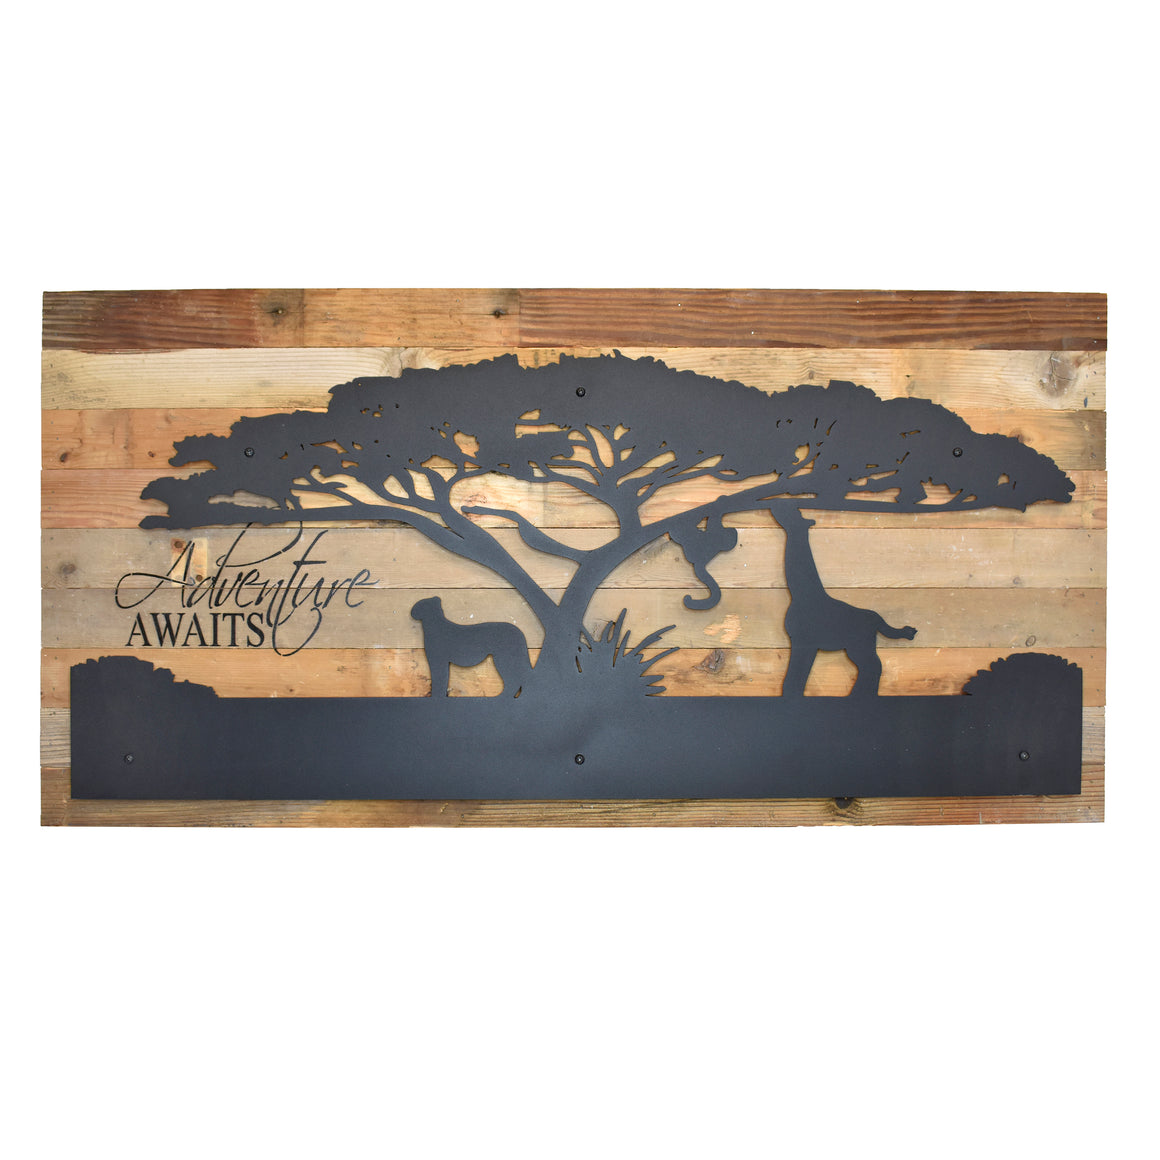 "Busch Gardens Adventure Awaits Metal Cutout Wall Art - 36"" x 18"""